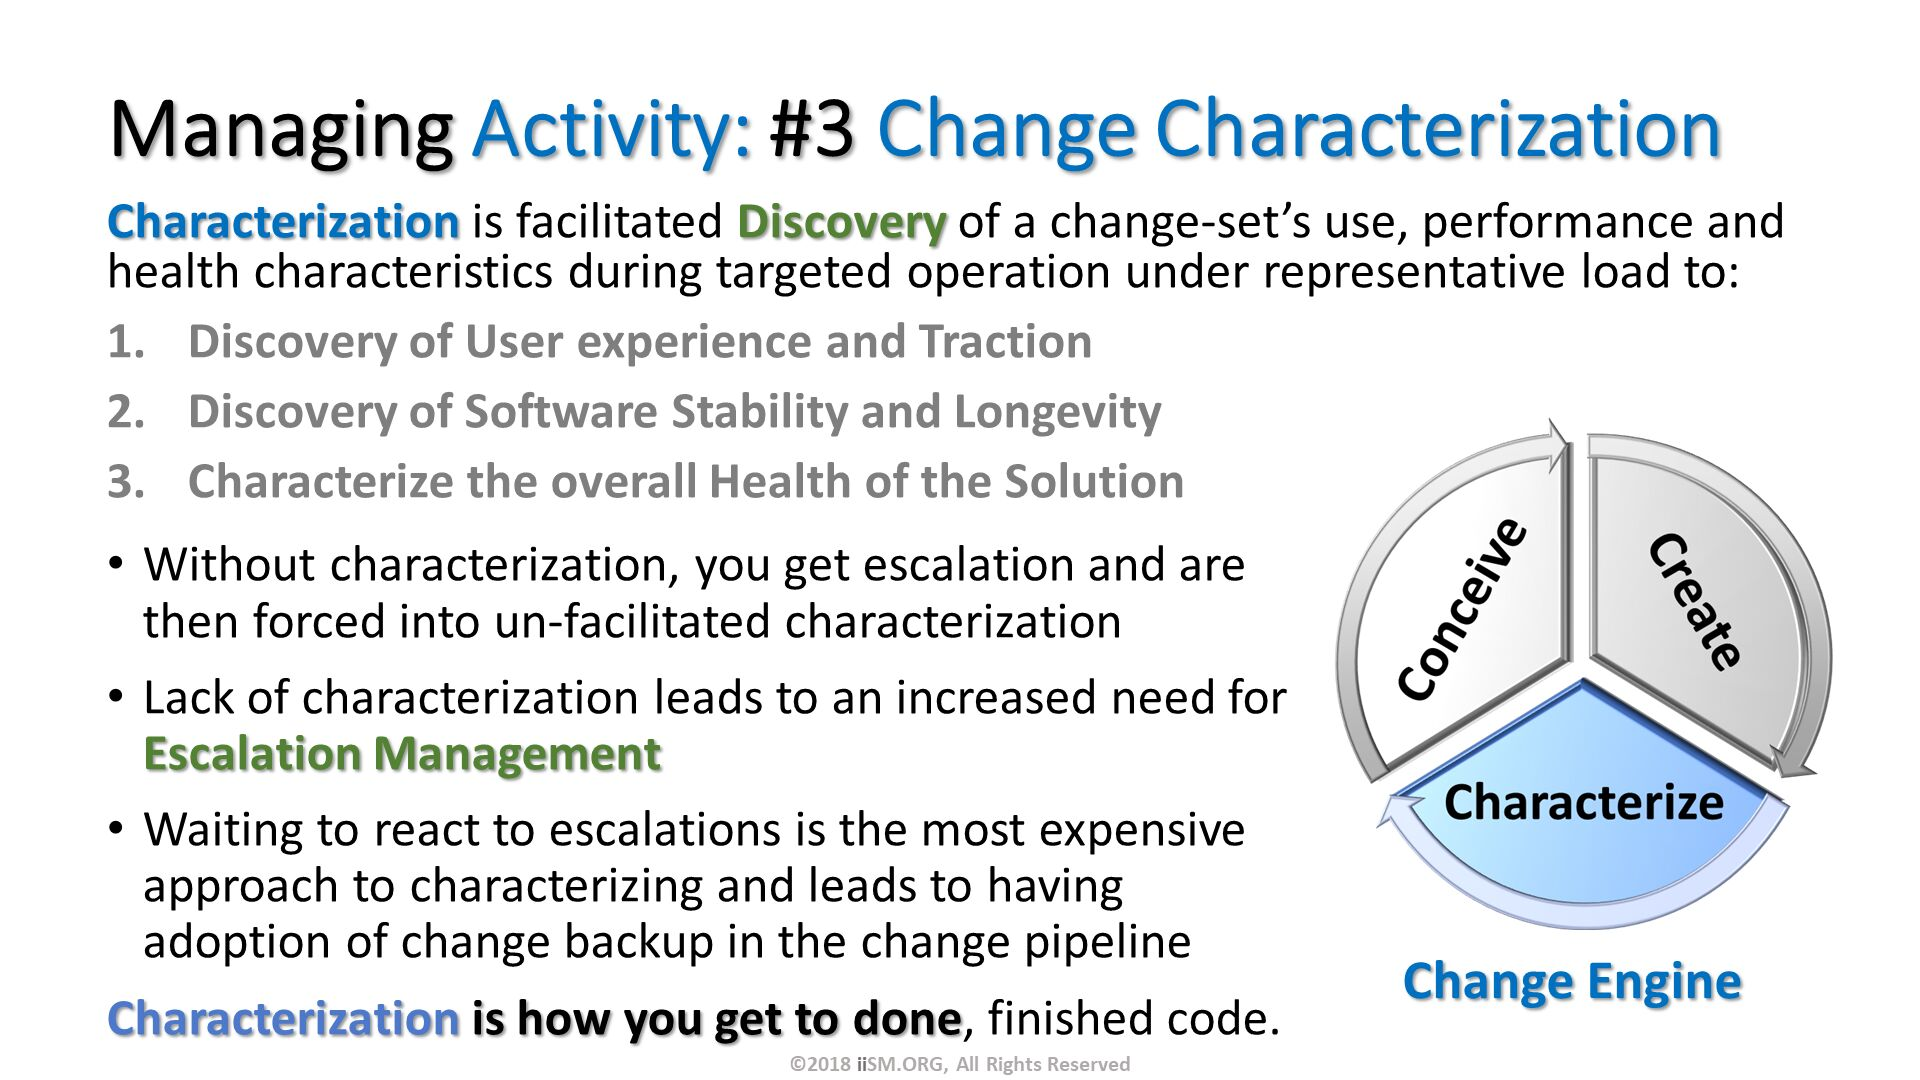 Managing Activity: #3 Change Characterization. Characterization is facilitated Discovery of a change-set's use, performance and health characteristics during targeted operation under representative load to: Discovery of User experience and Traction Discovery of Software Stability and Longevity Characterize the overall Health of the Solution. Without characterization, you get escalation and are then forced into un-facilitated characterization Lack of characterization leads to an increased need for Escalation Management  Waiting to react to escalations is the most expensive approach to characterizing and leads to having adoption of change backup in the change pipeline  Characterization is how you get to done, finished code. Change Engine . ©2018 iiSM.ORG, All Rights Reserved.